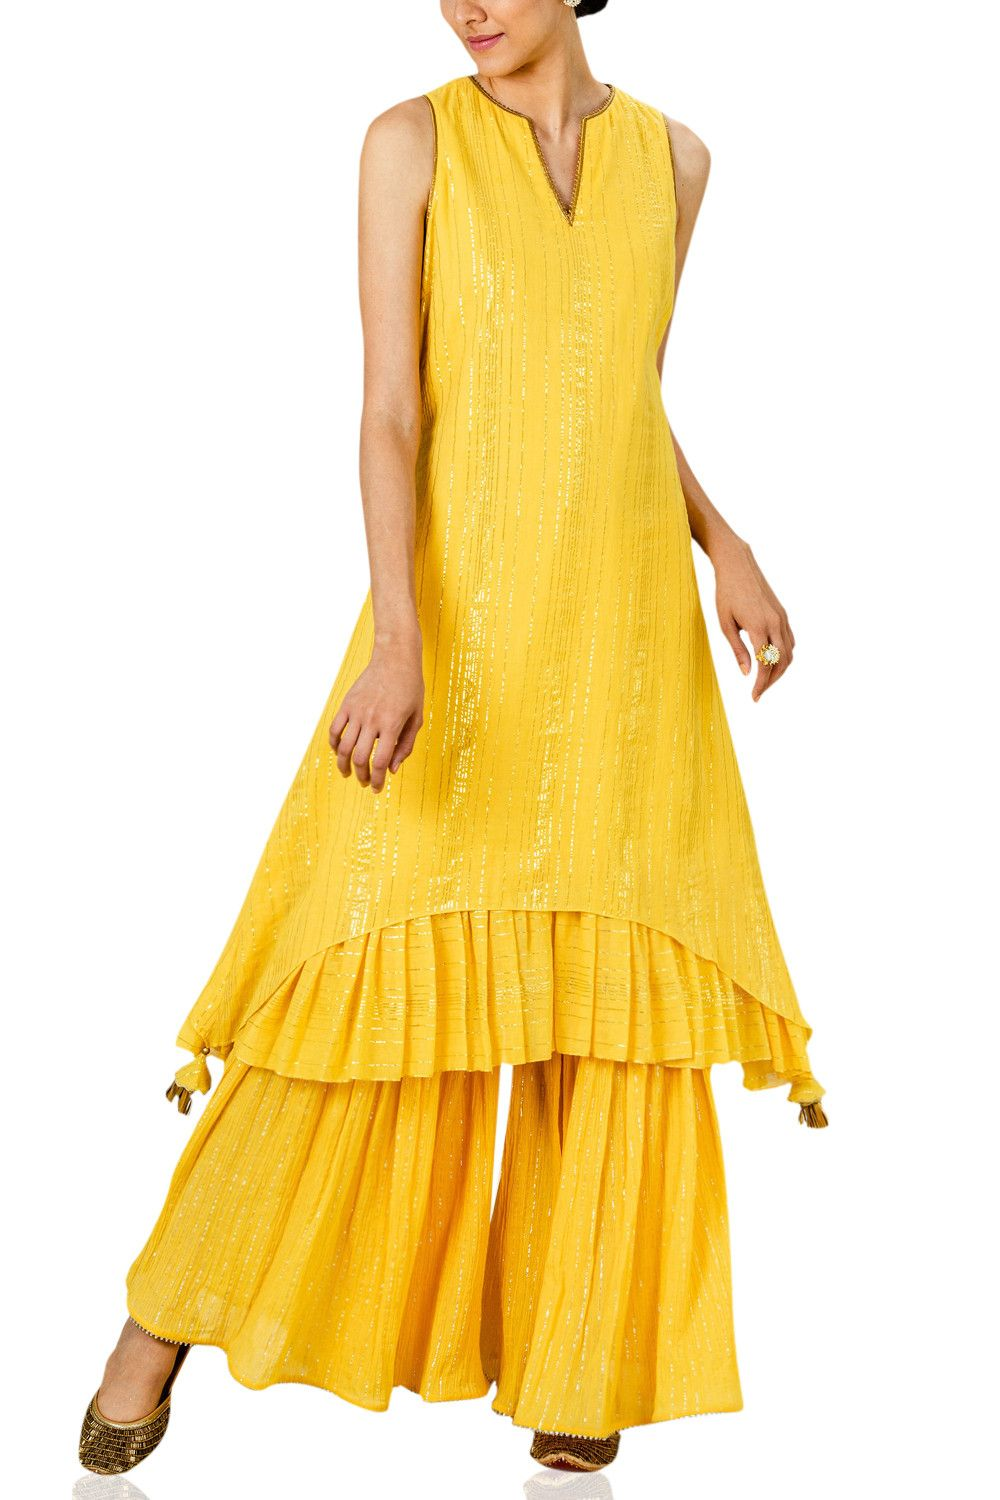 Party Wear Heavy Kurtis For Marriage (62)